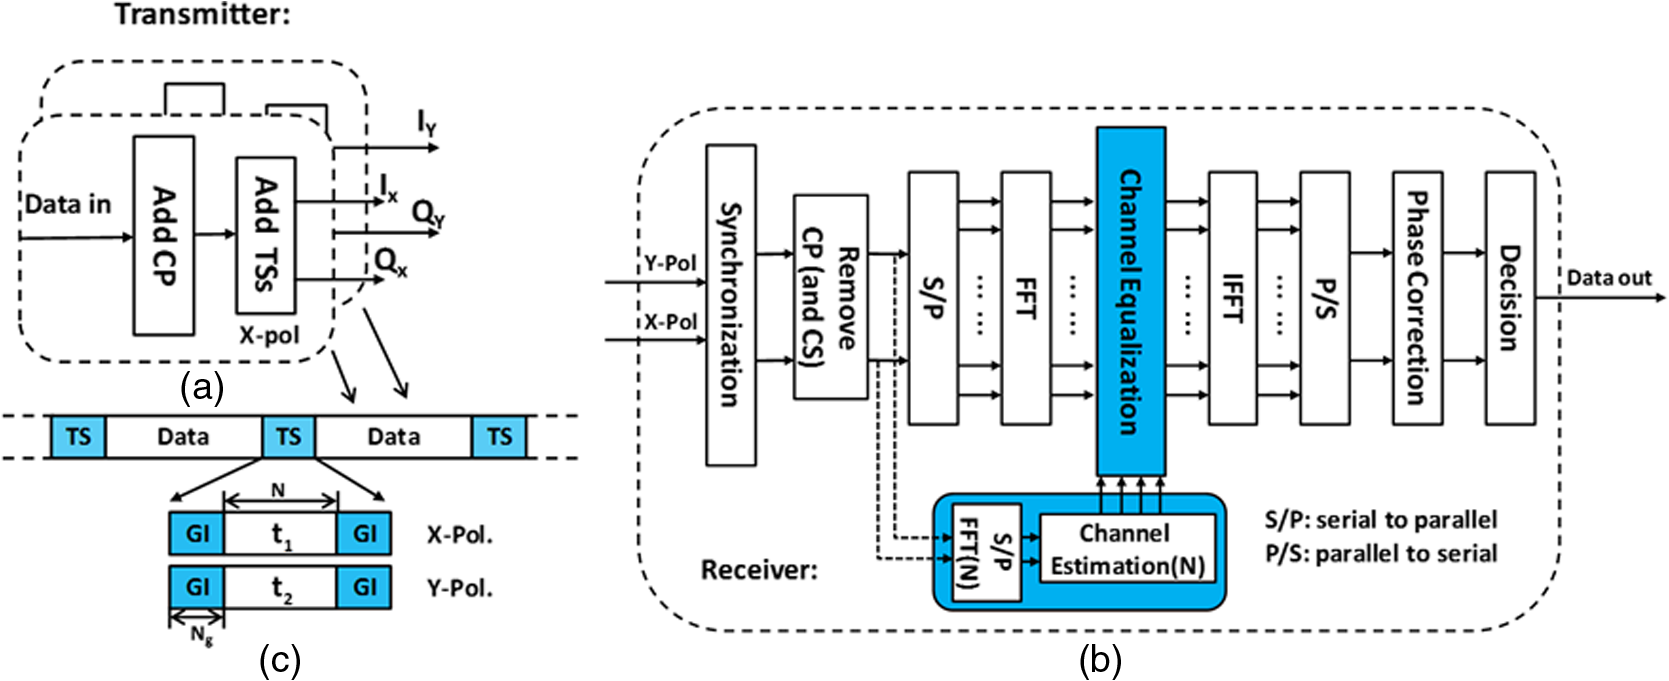 Channel estimation method using orthogonal sequences in frequency